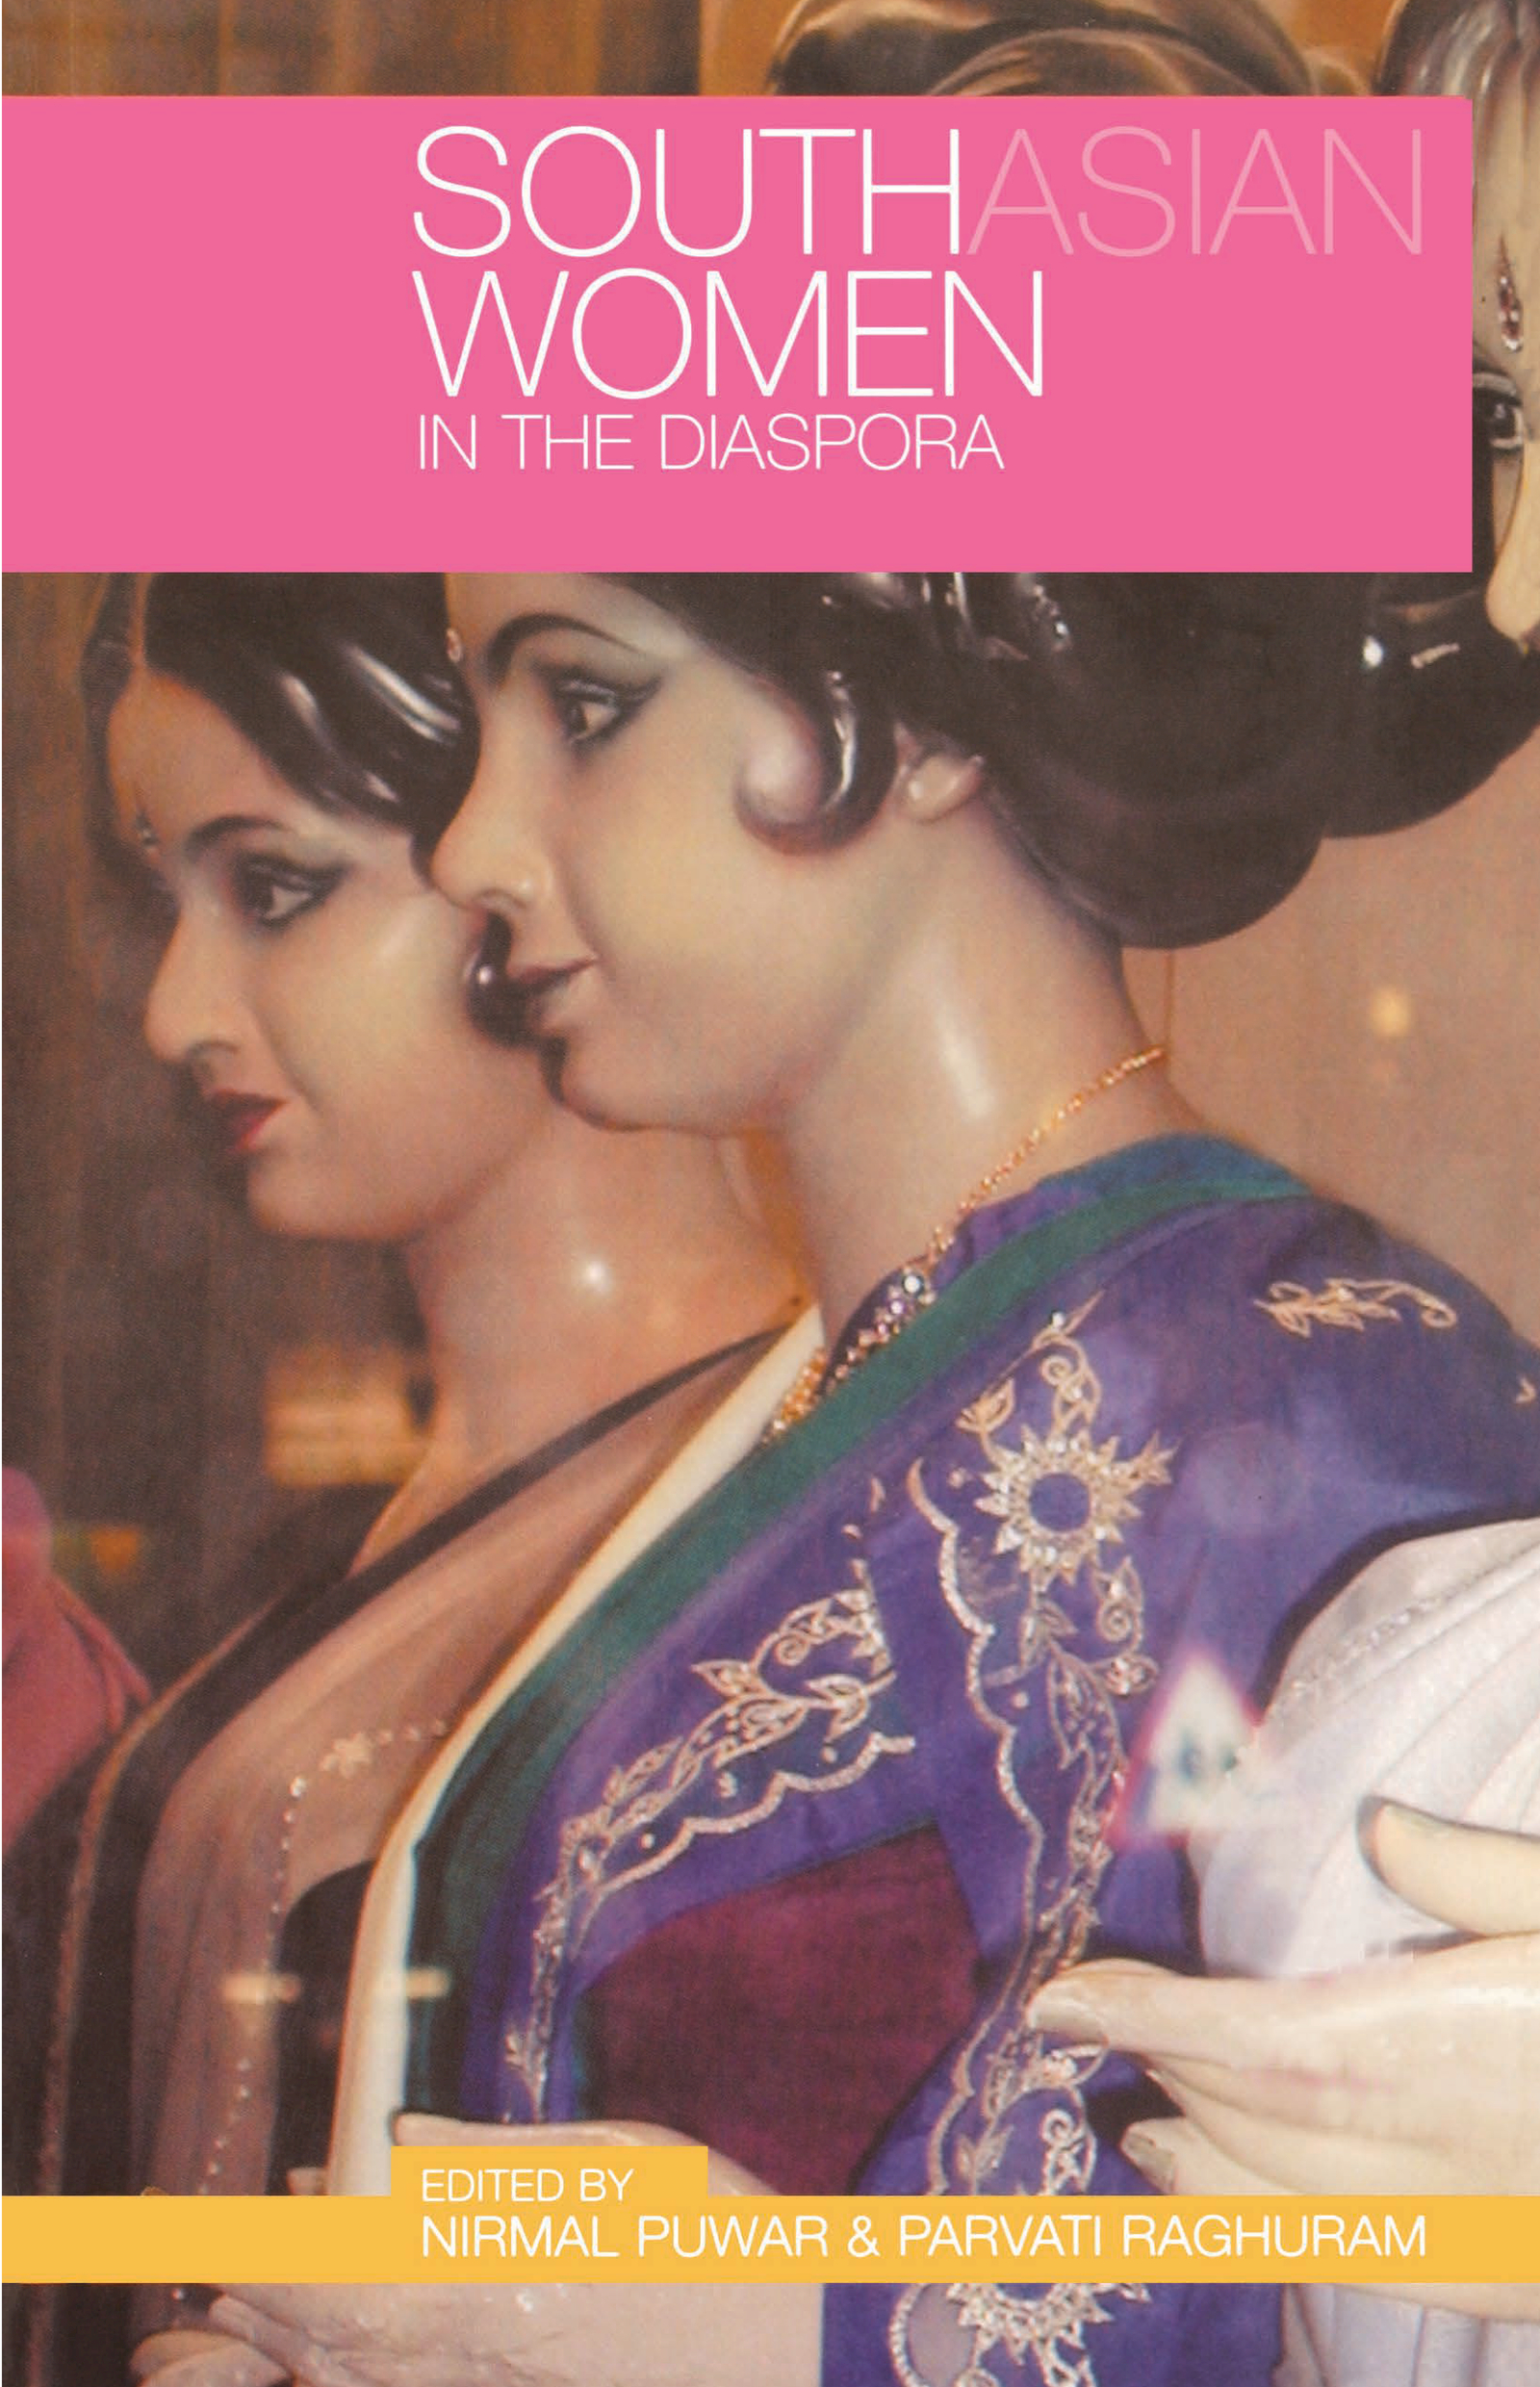 Fashioning the South Asian Diaspora: Production and Consumption Tales